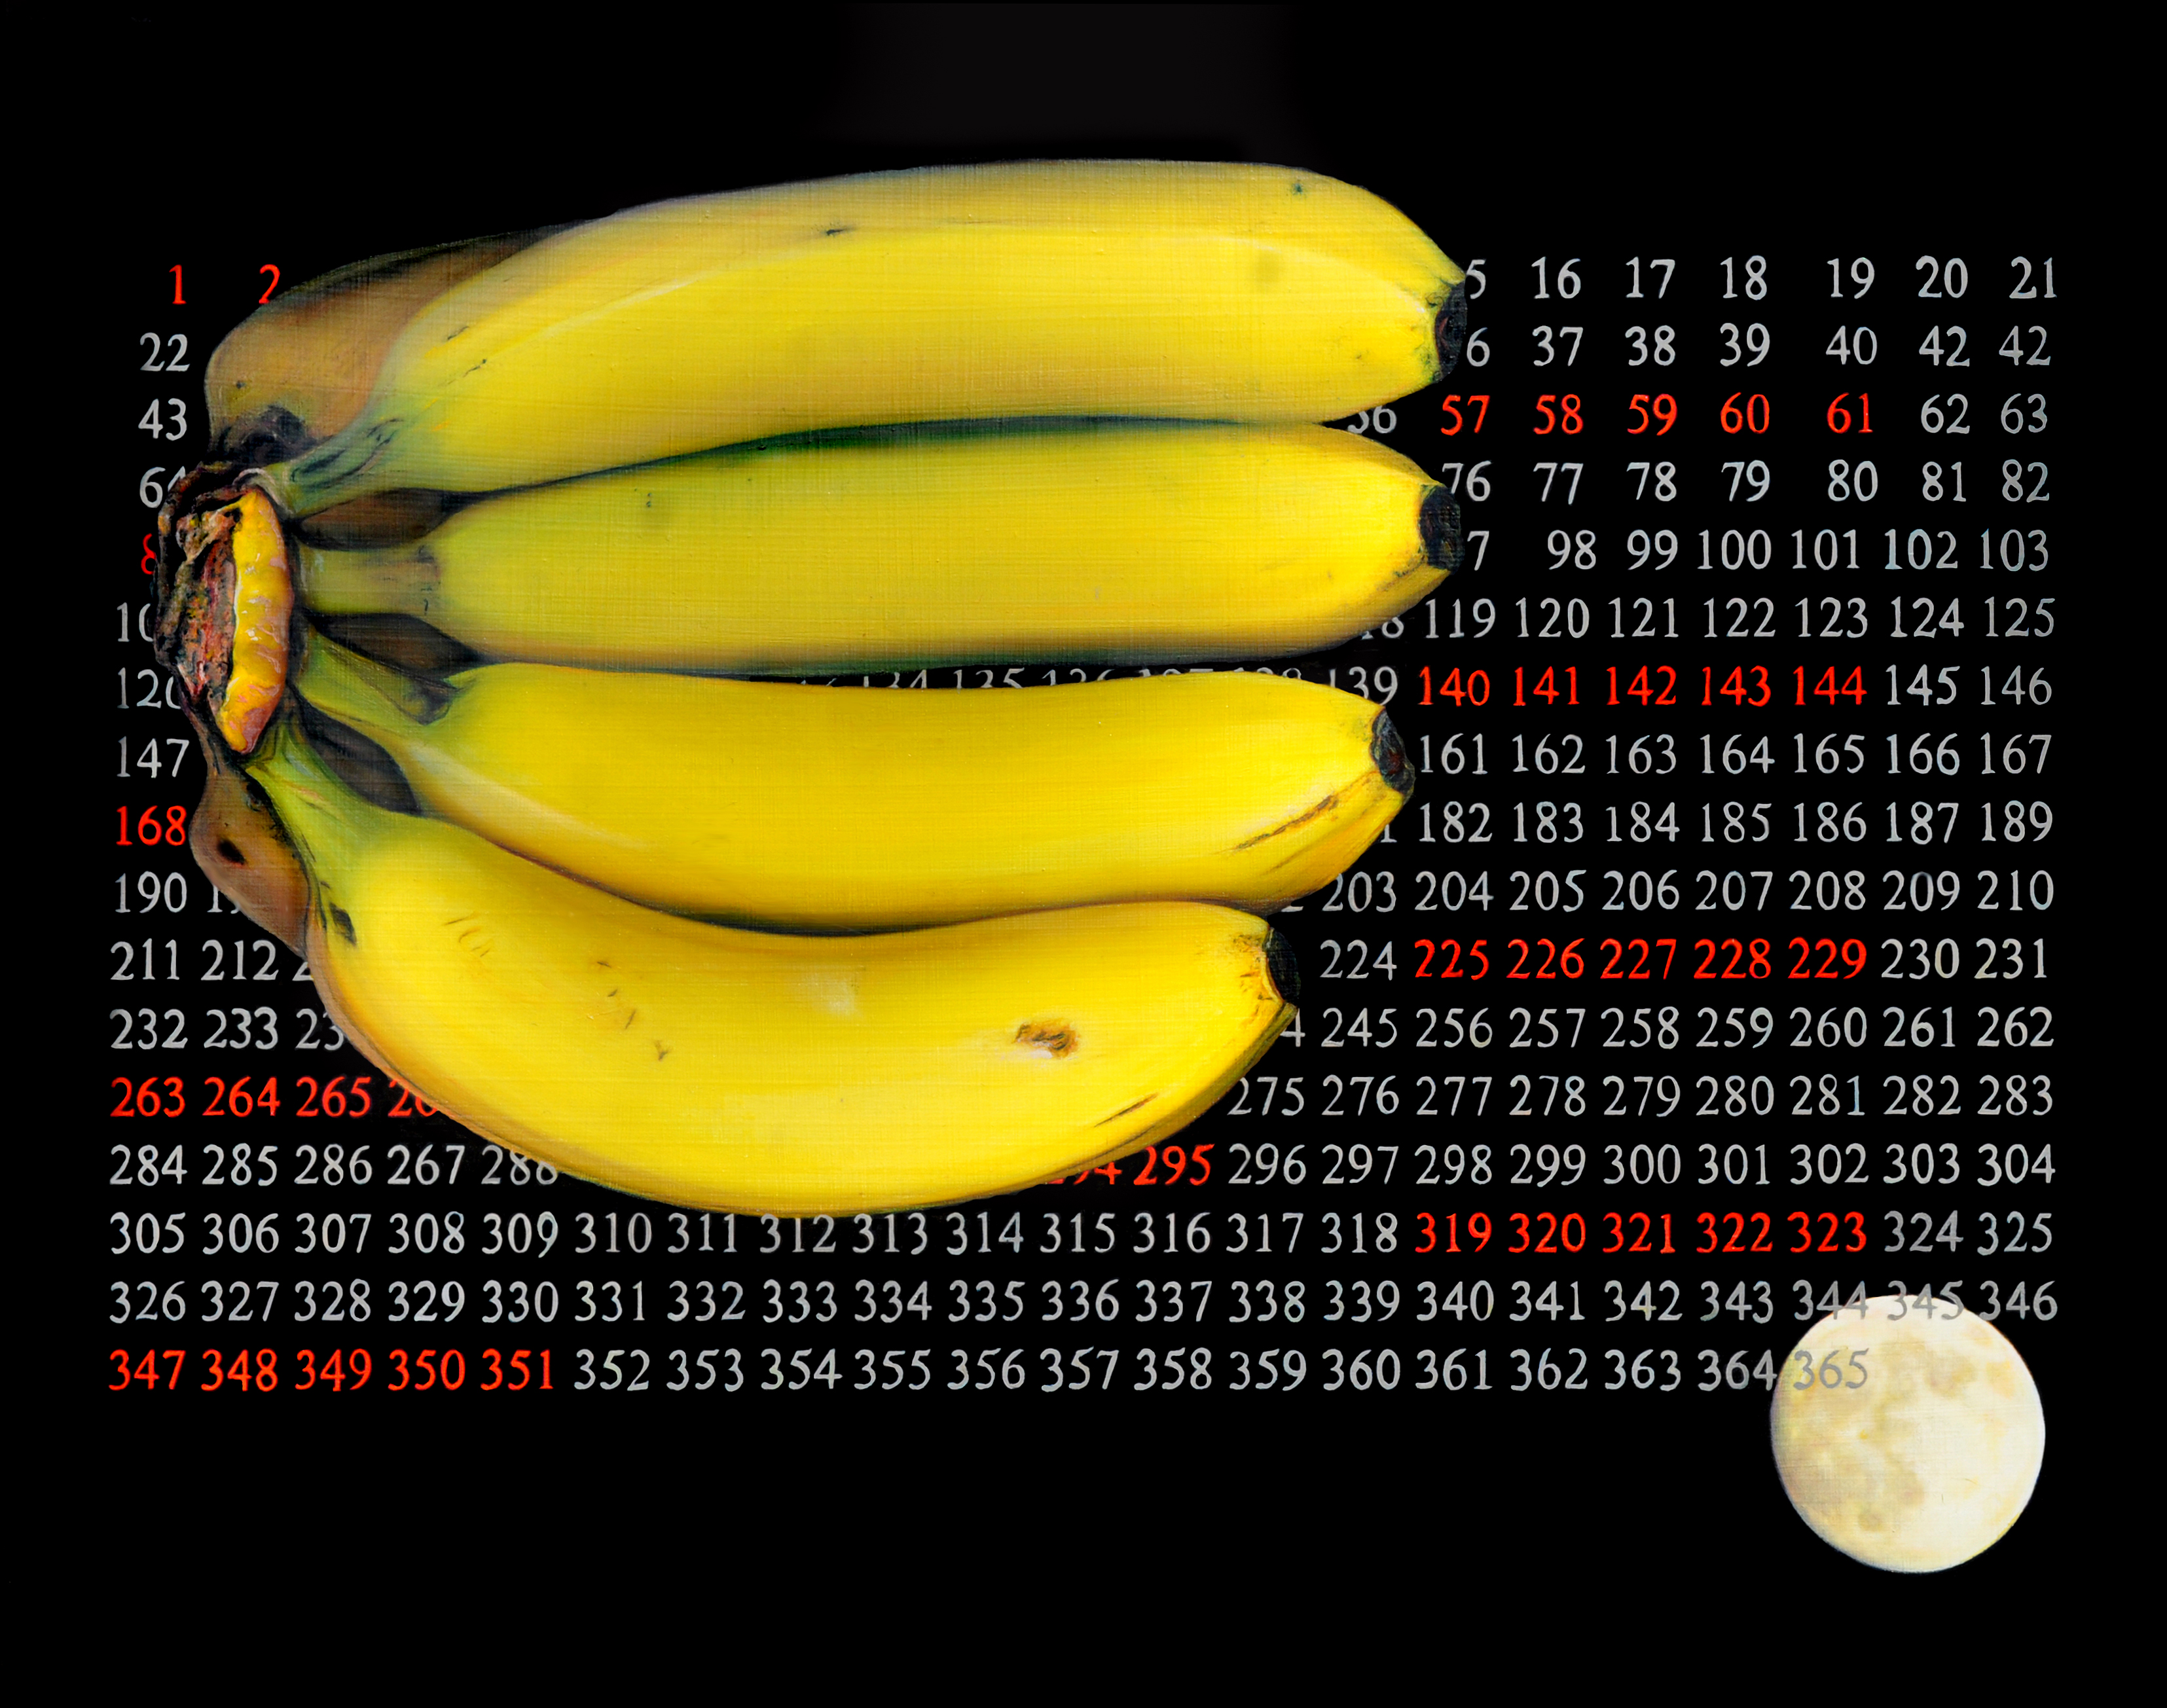 Bananas superimposed over a calendar with white and red numbers, with small moon in lower right